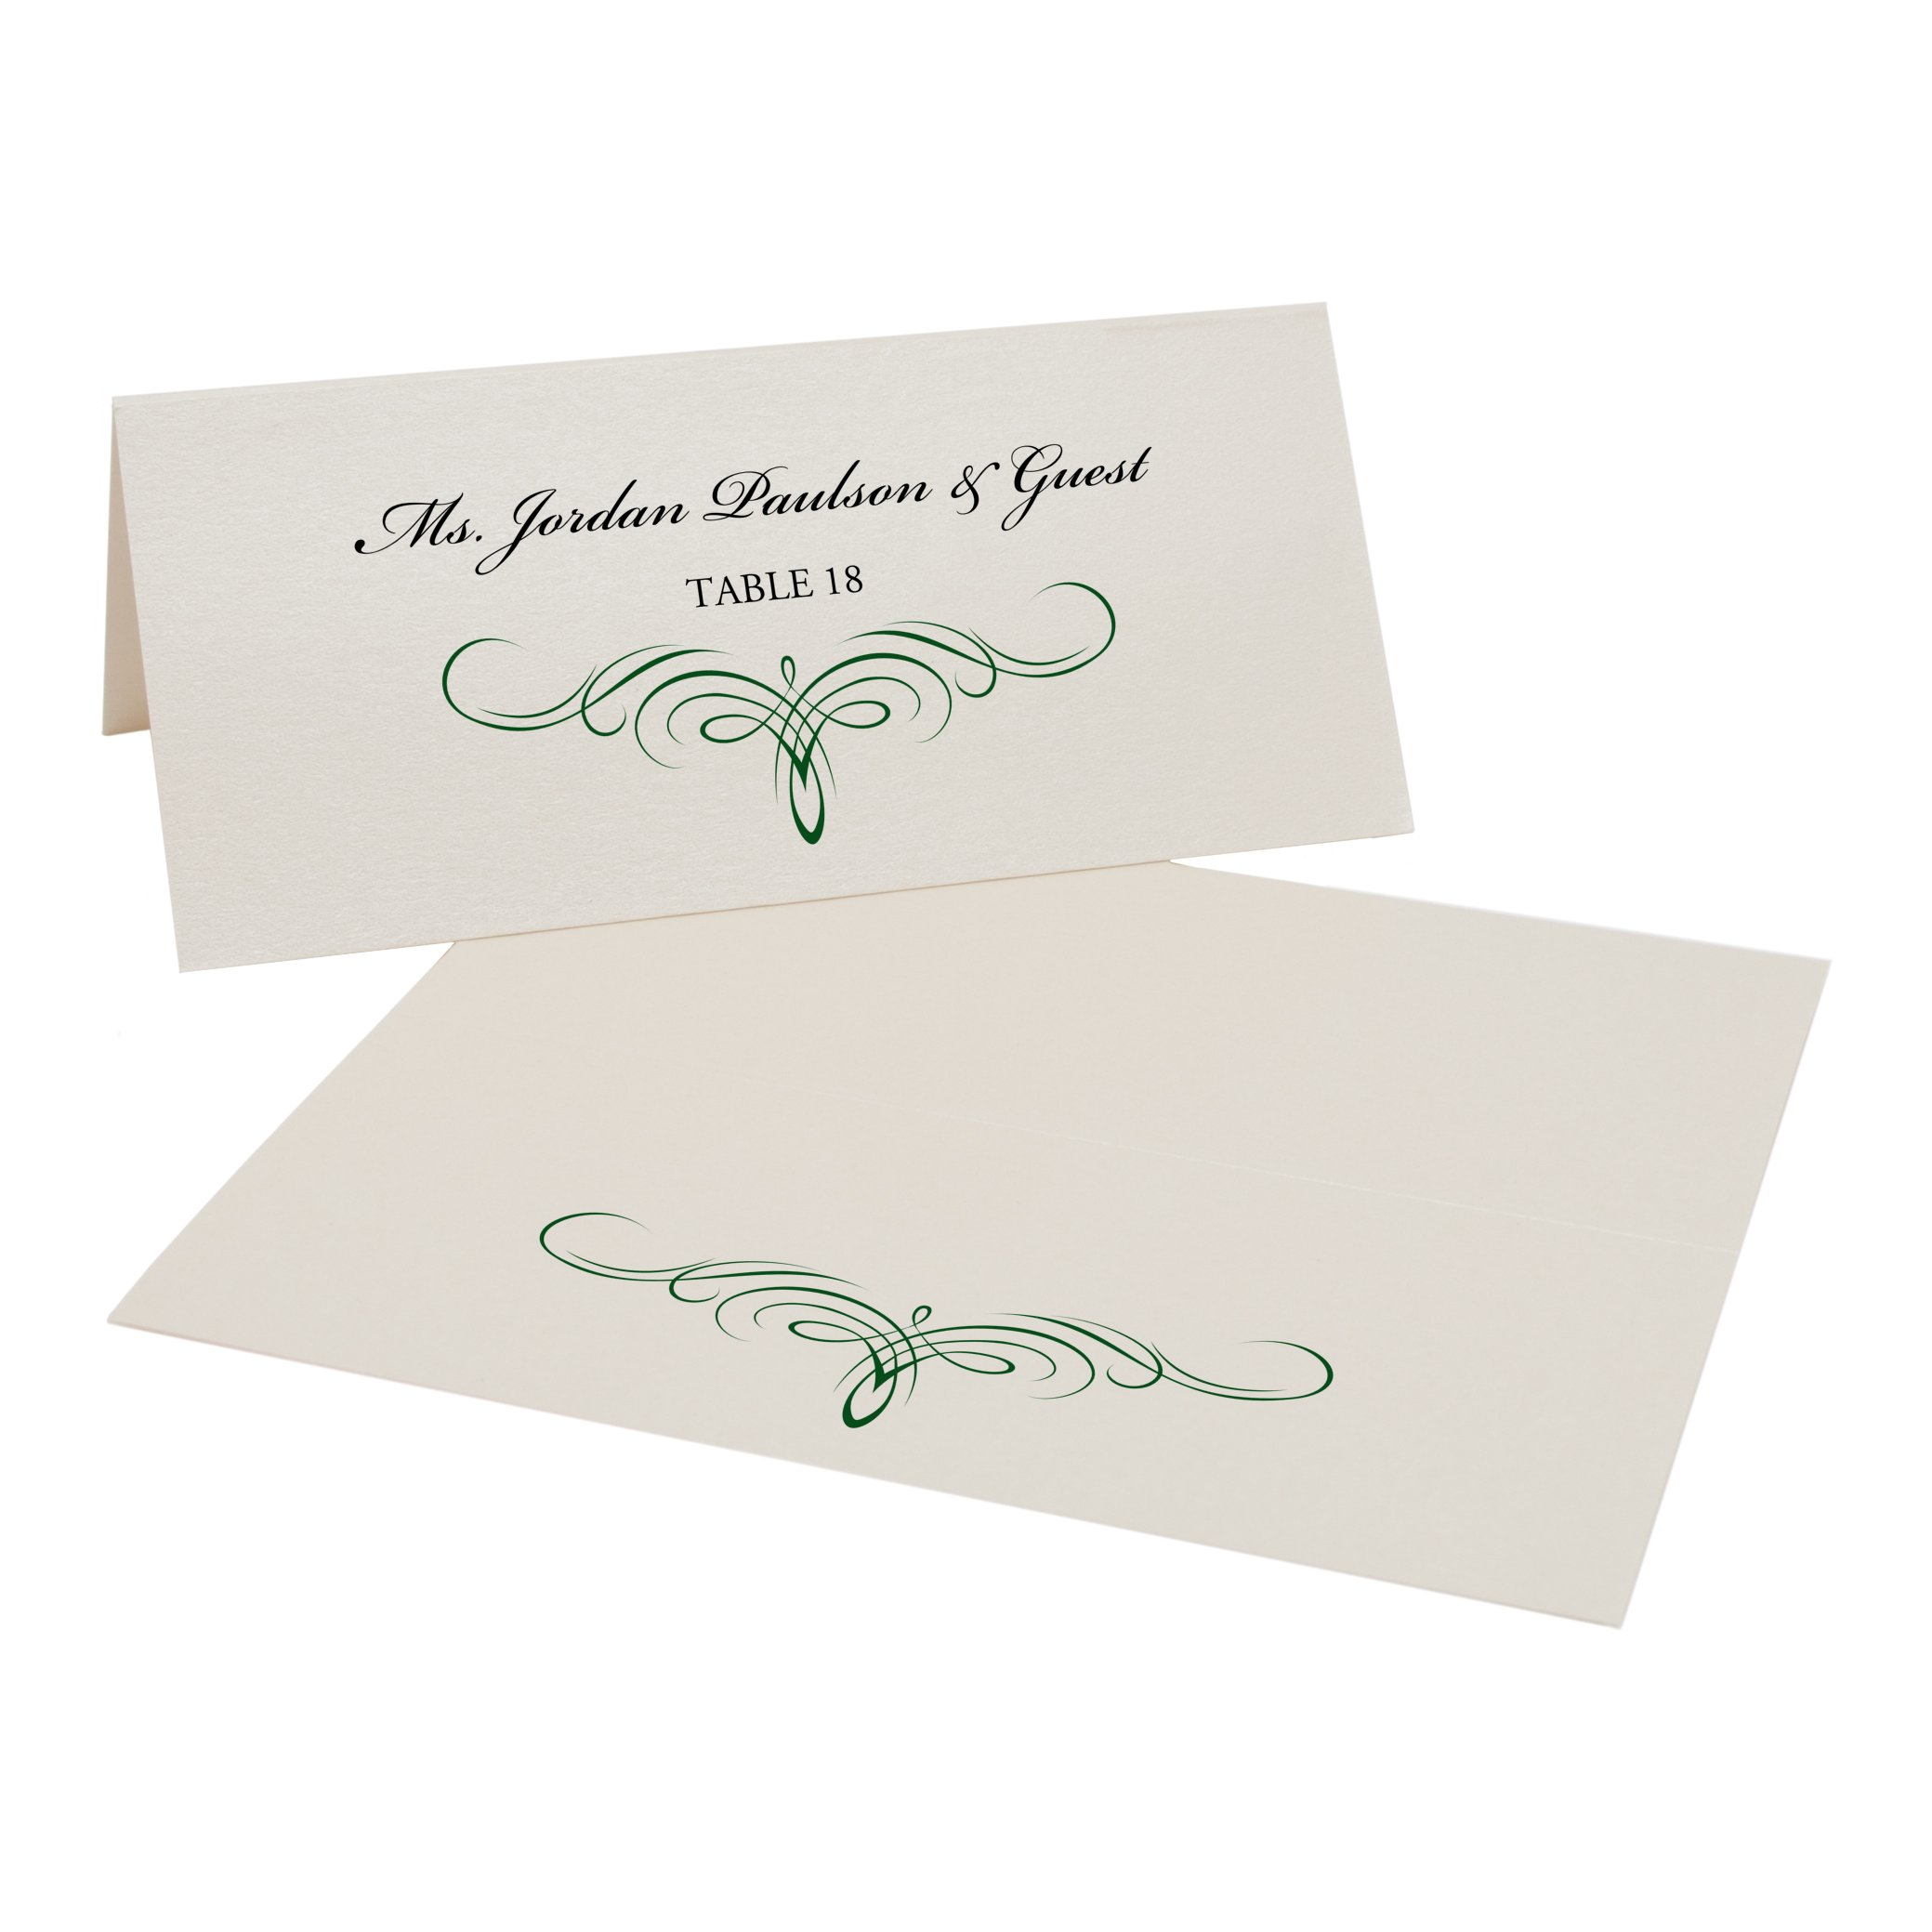 Decadent Flourish Place Cards, Champagne, Hunter Green, Set of 375 by Documents and Designs